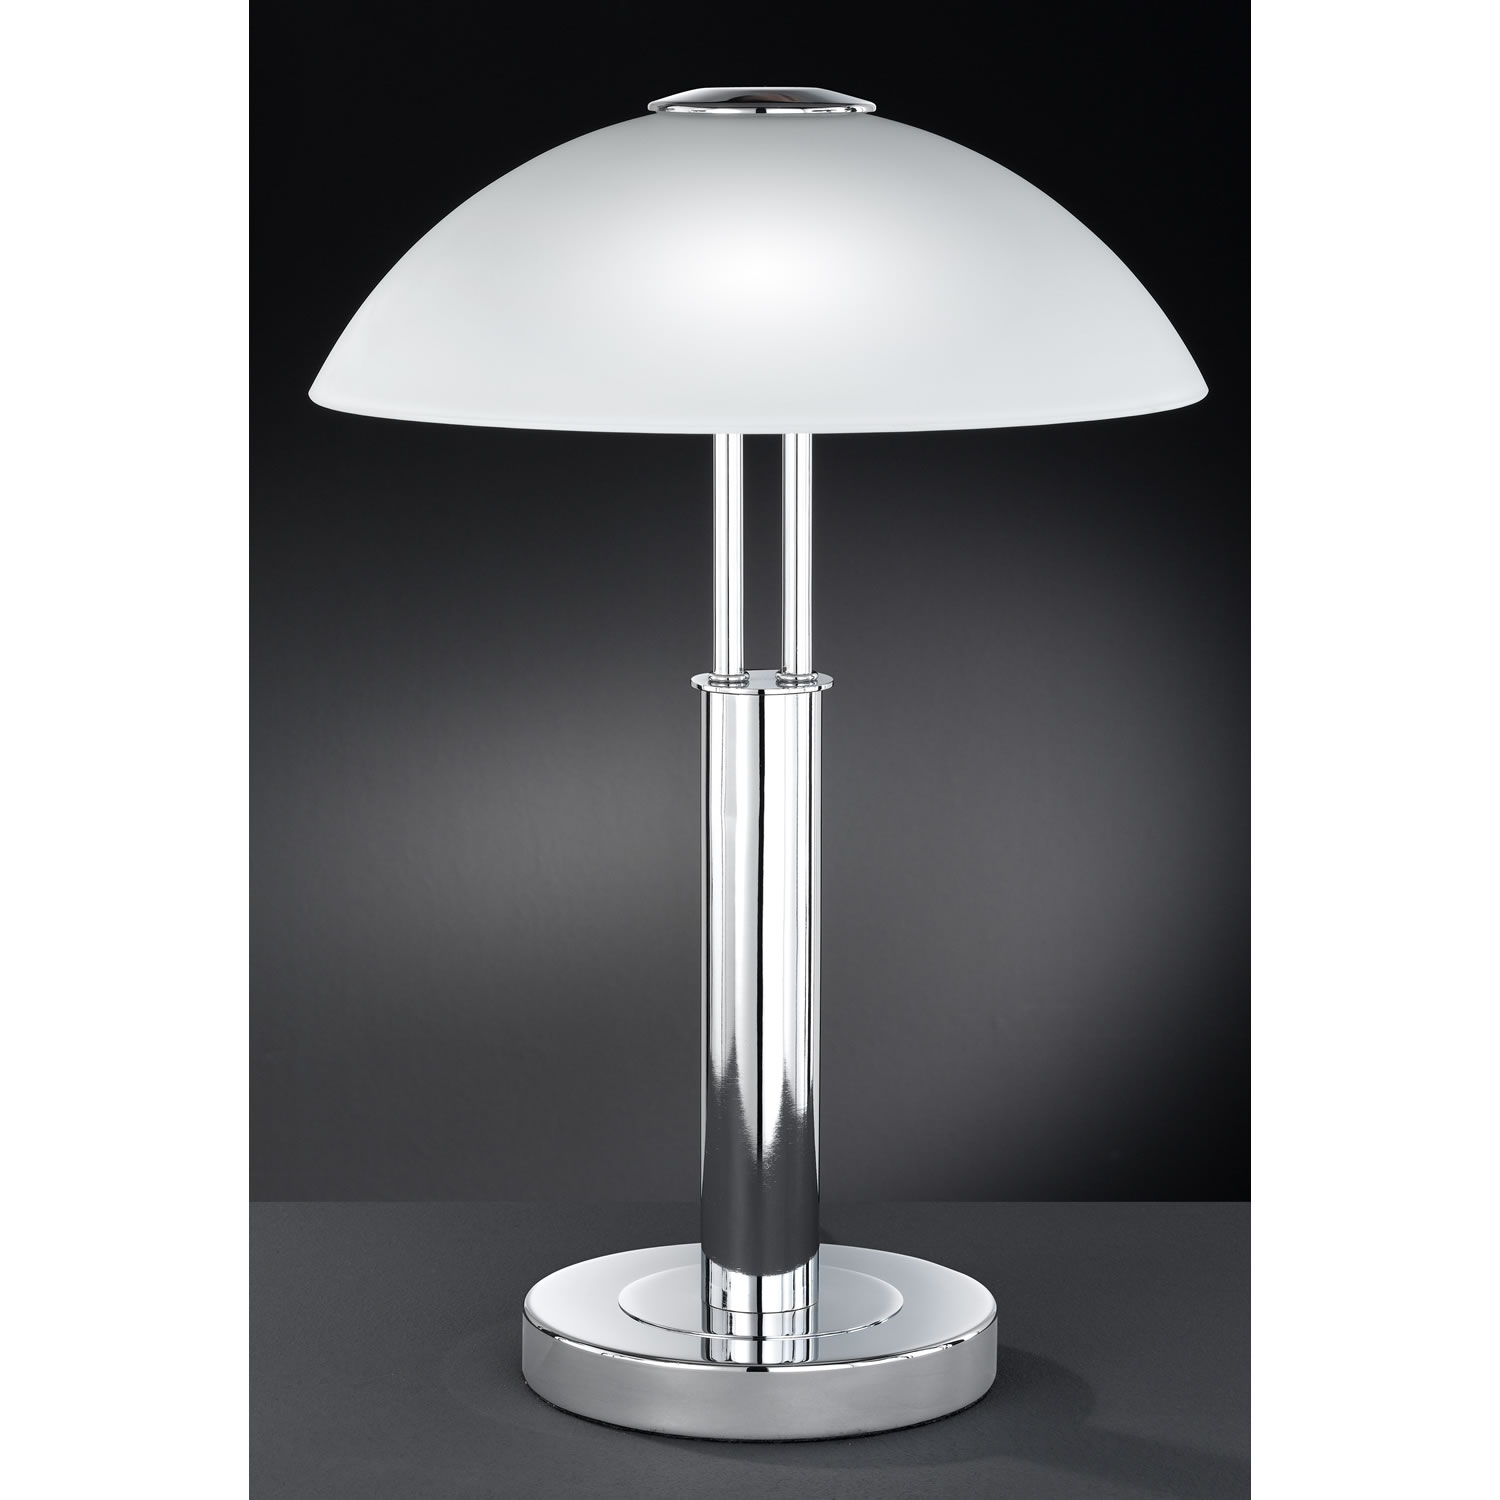 High Quality Glass Touch Lamp Ability To Add Class Any Room Warisan Lighting